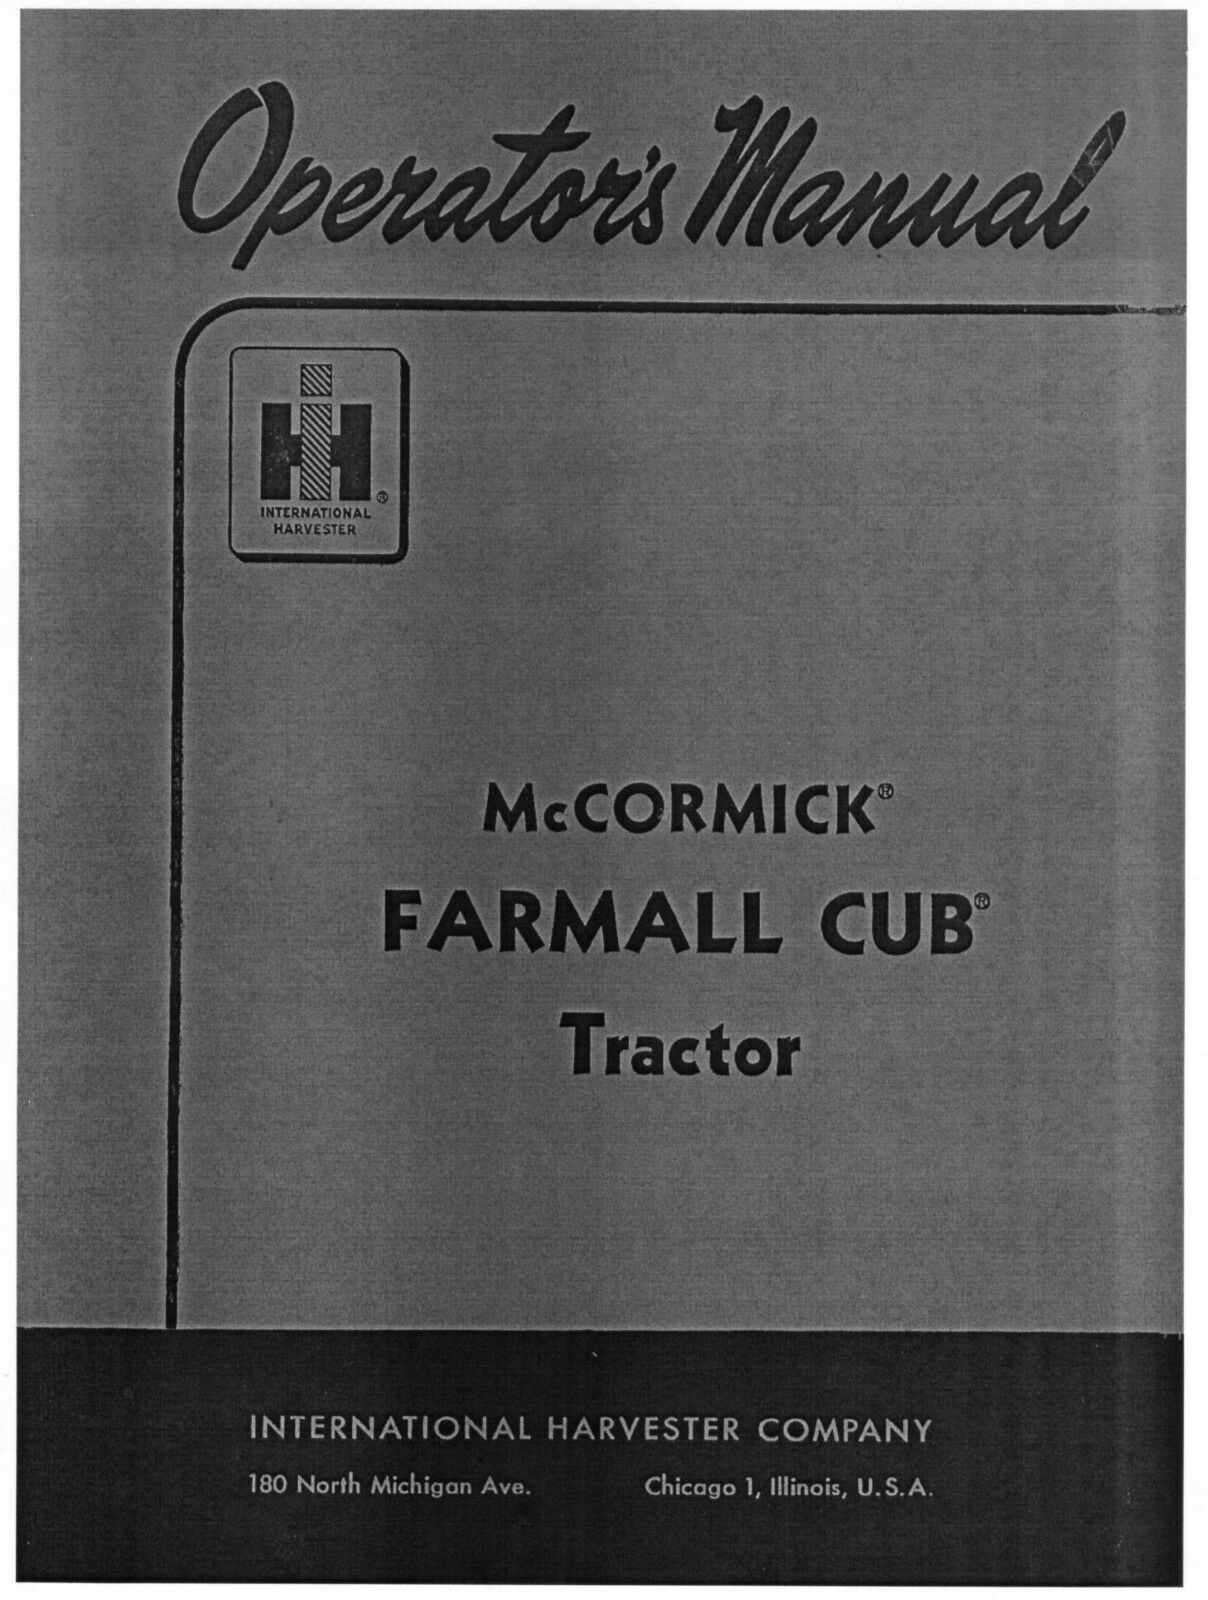 FARMALL CUB Operators Manual - IH - McCORMICK 1 of 4Only 4 available ...